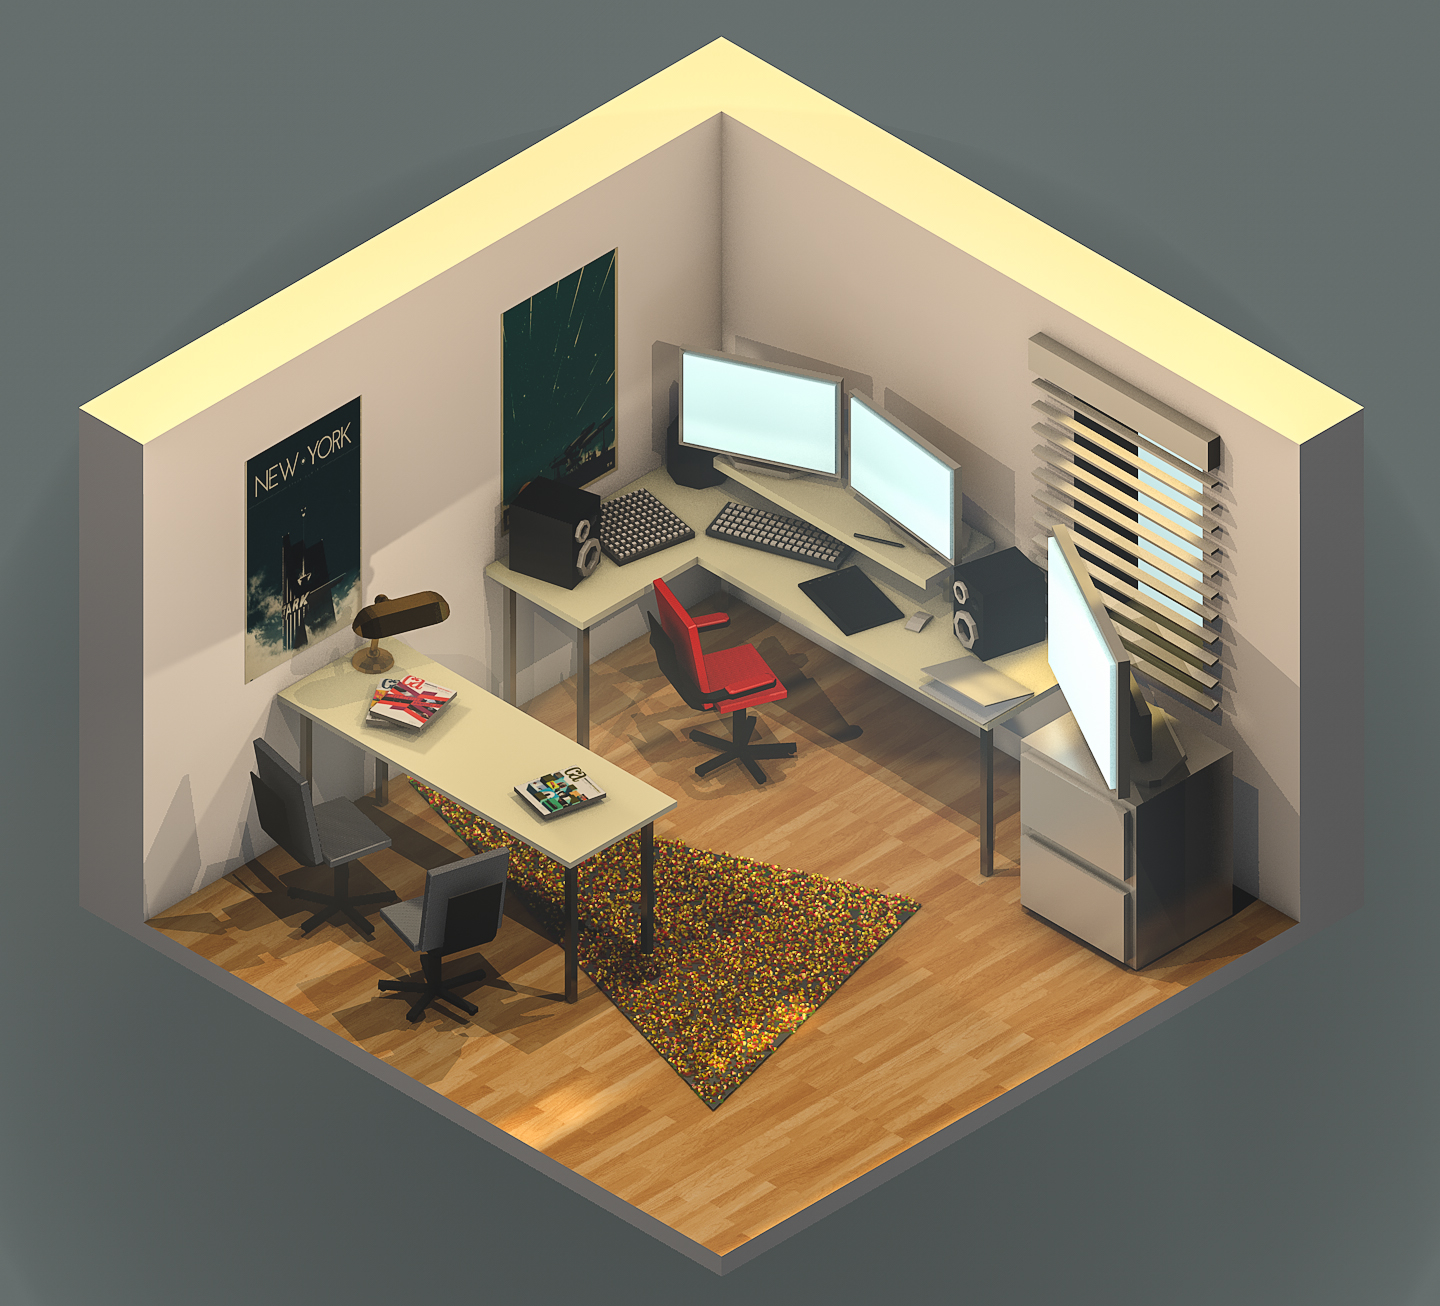 Low poly version of my office